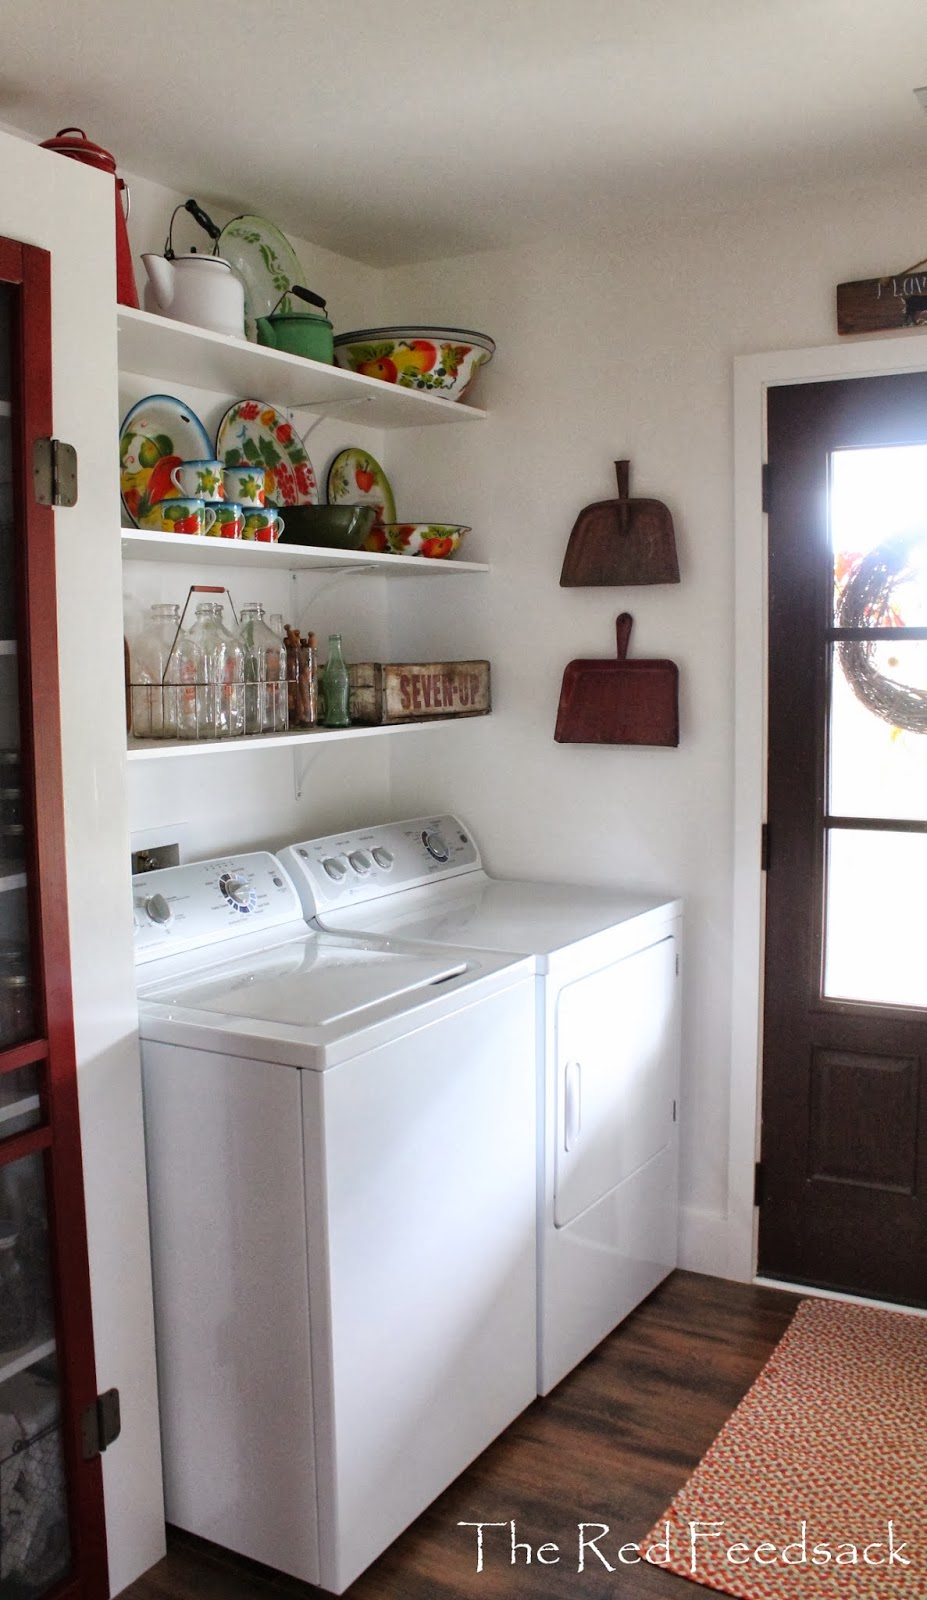 Top The Red Feedsack: My Laundry Room Is Company Ready! GL31